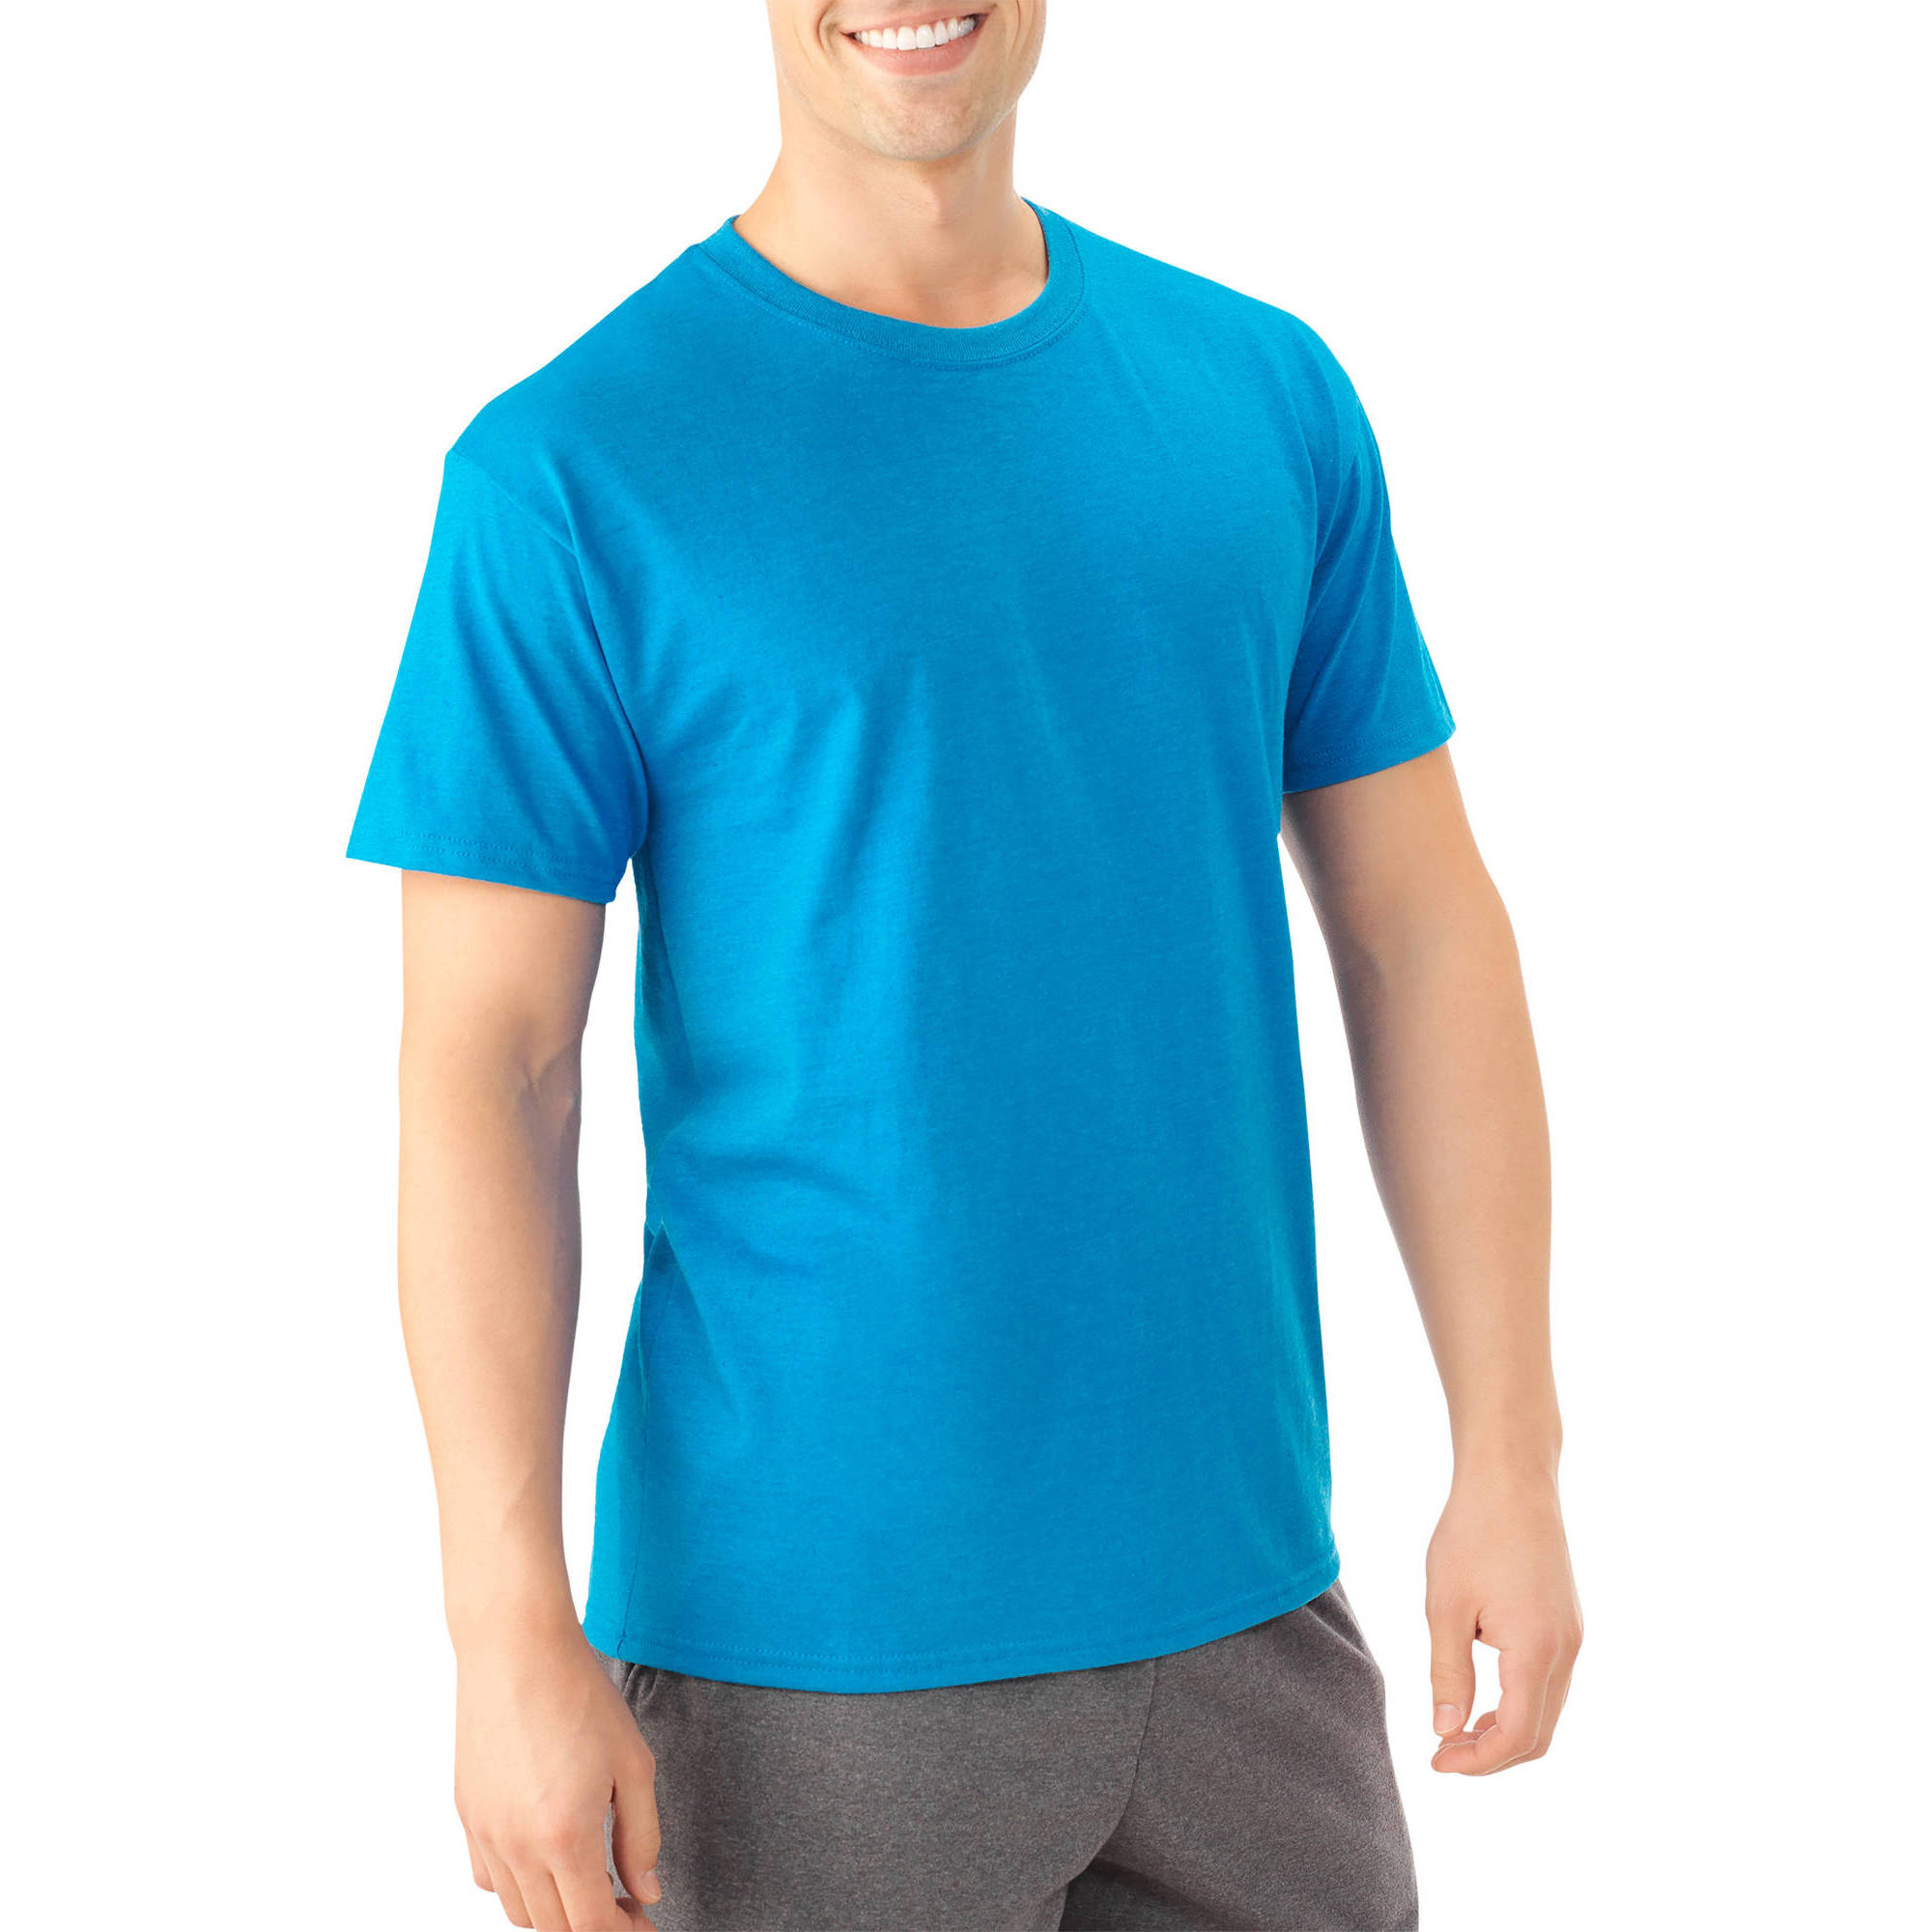 Men's Platinum Eversoft Short Sleeve Crew T Shirt, up to Size 4XL by Fruit of the Loom